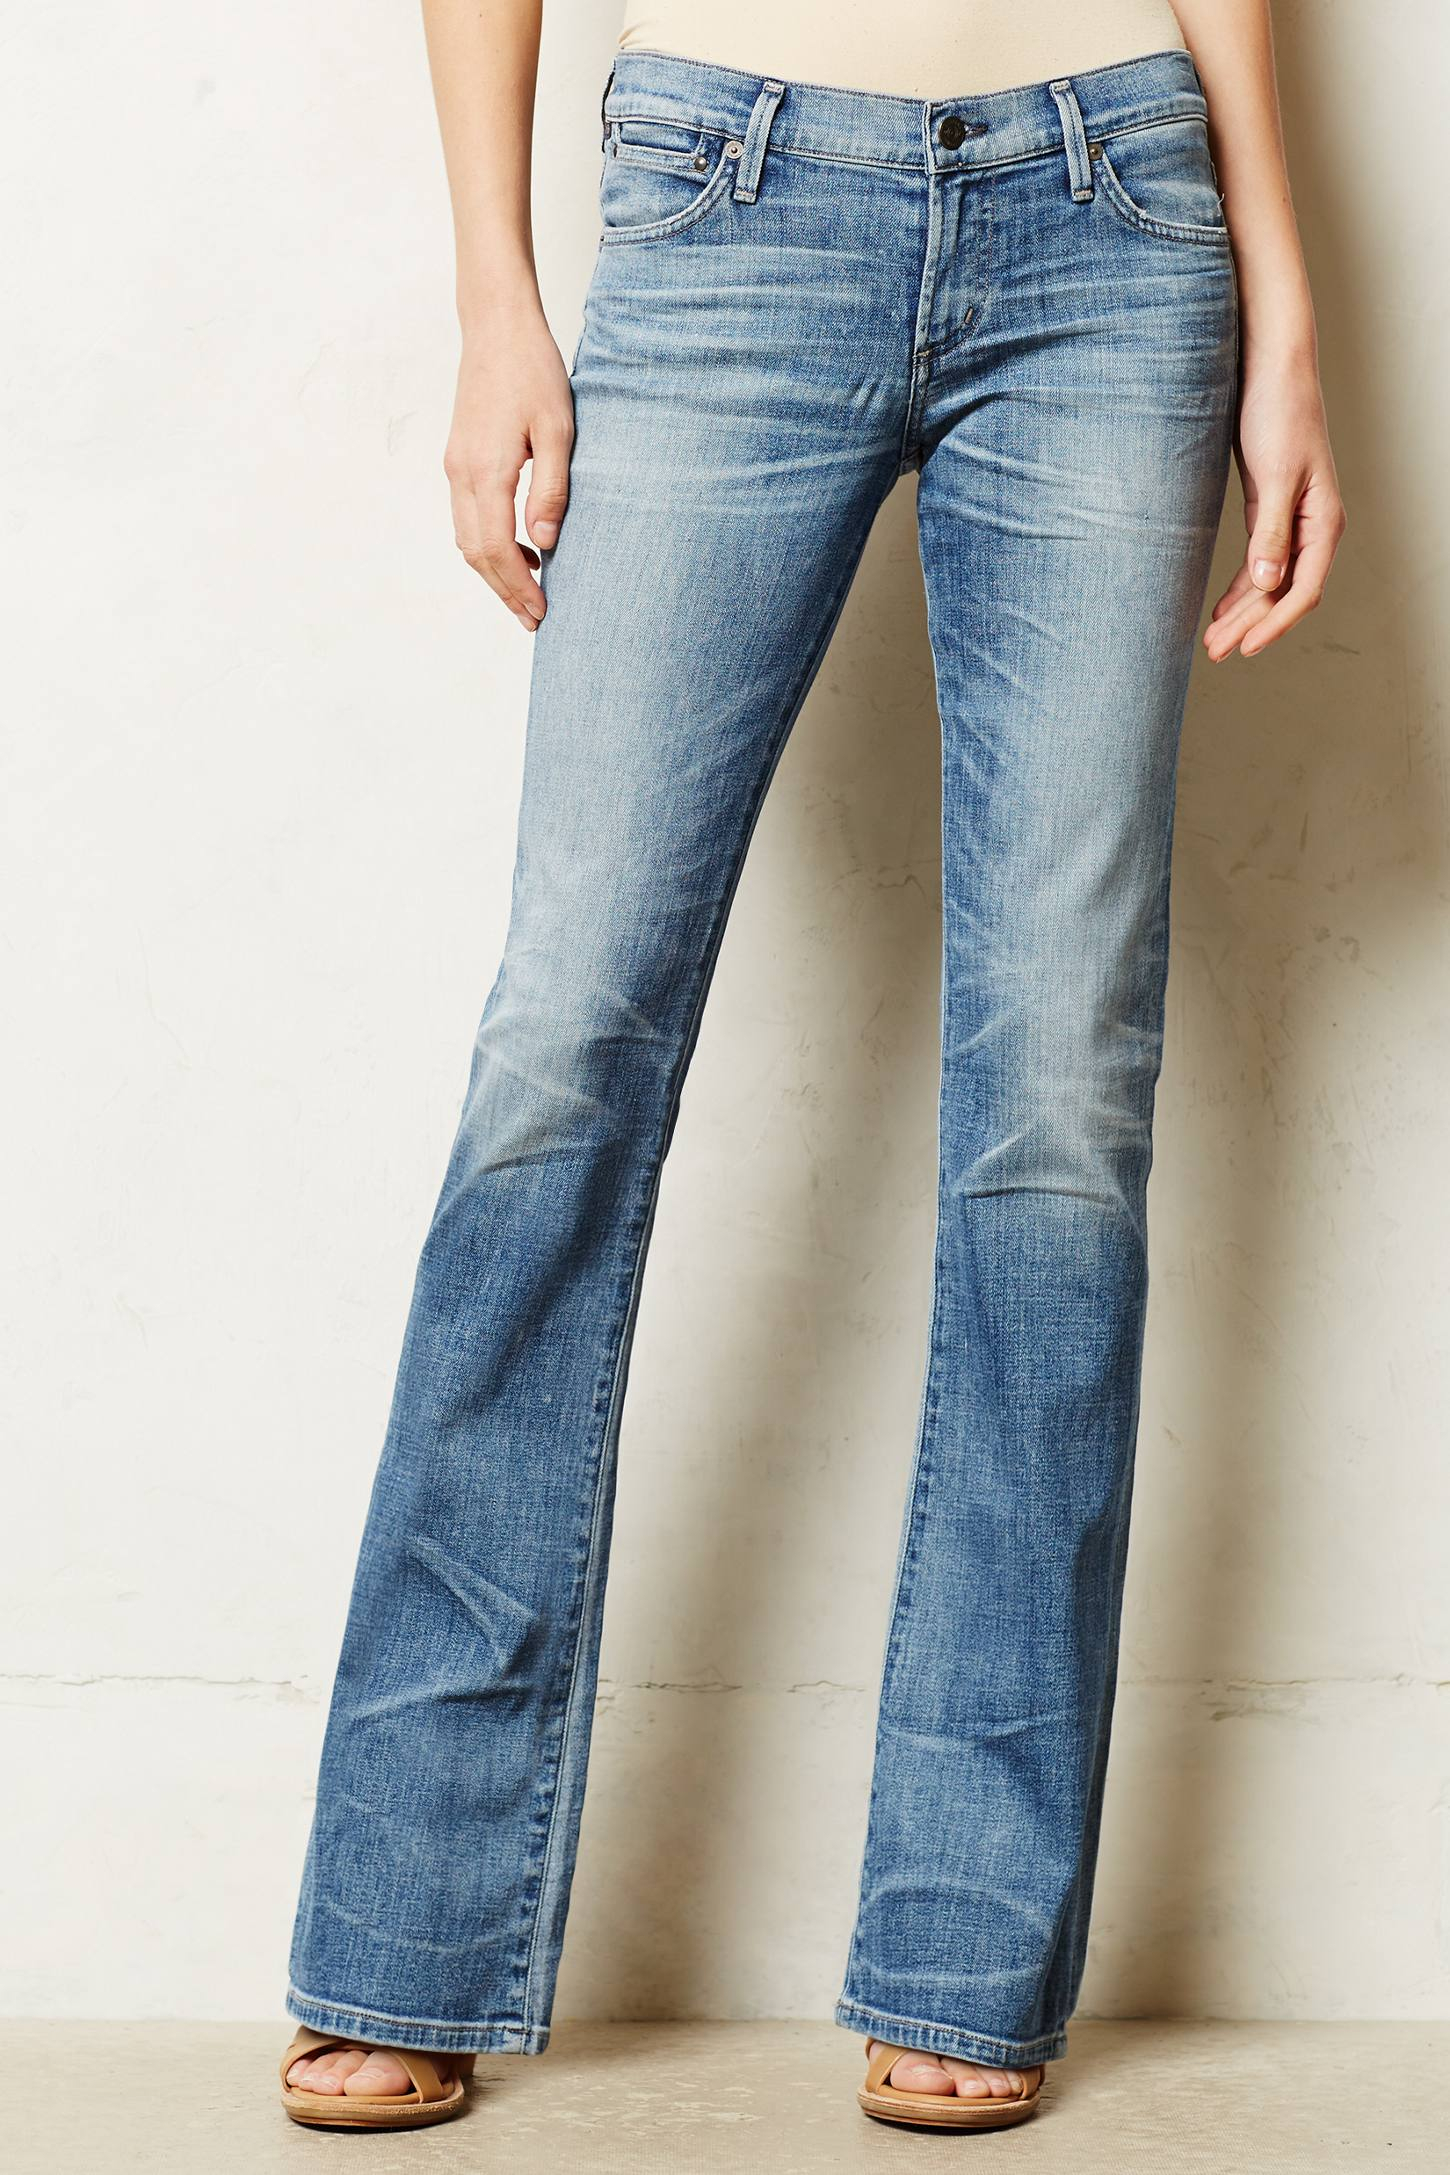 Citizens Of Humanity Petite Emmanuelle Slim Boot Jeans in Blue (Belize) | Lyst